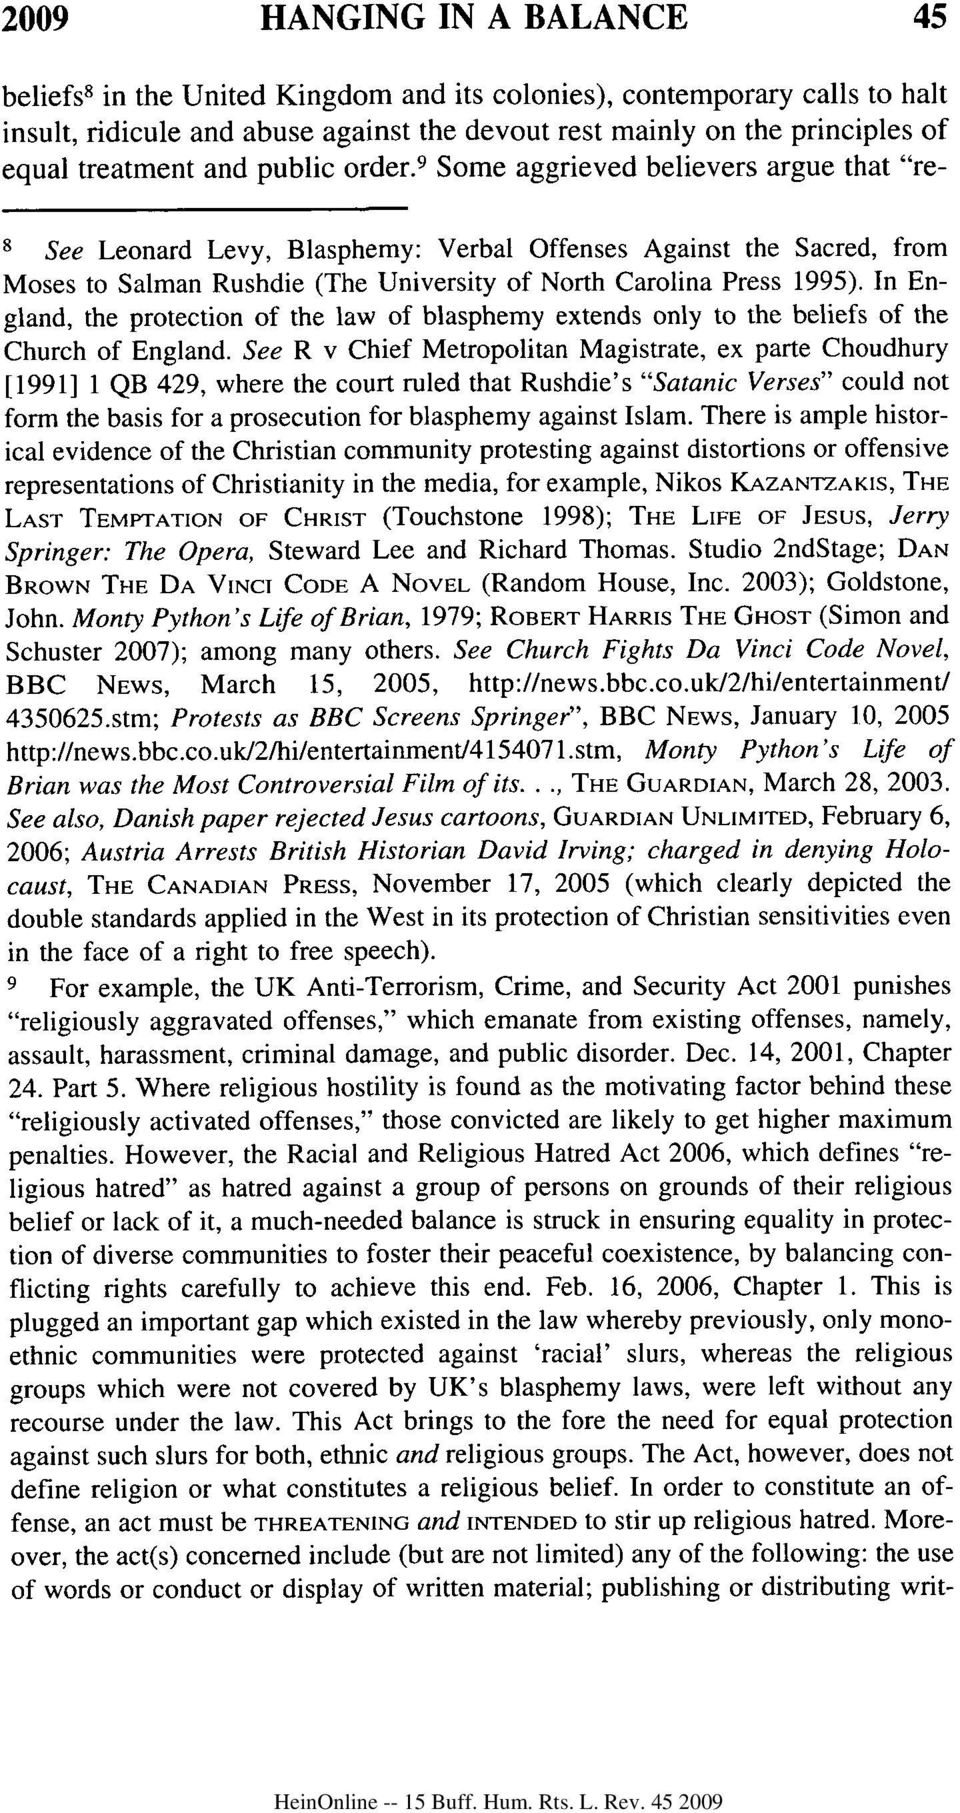 "9 Some aggrieved believers argue that ""re- 8 See Leonard Levy, Blasphemy: Verbal Offenses Against the Sacred, from Moses to Salman Rushdie (The University of North Carolina Press 1995)."